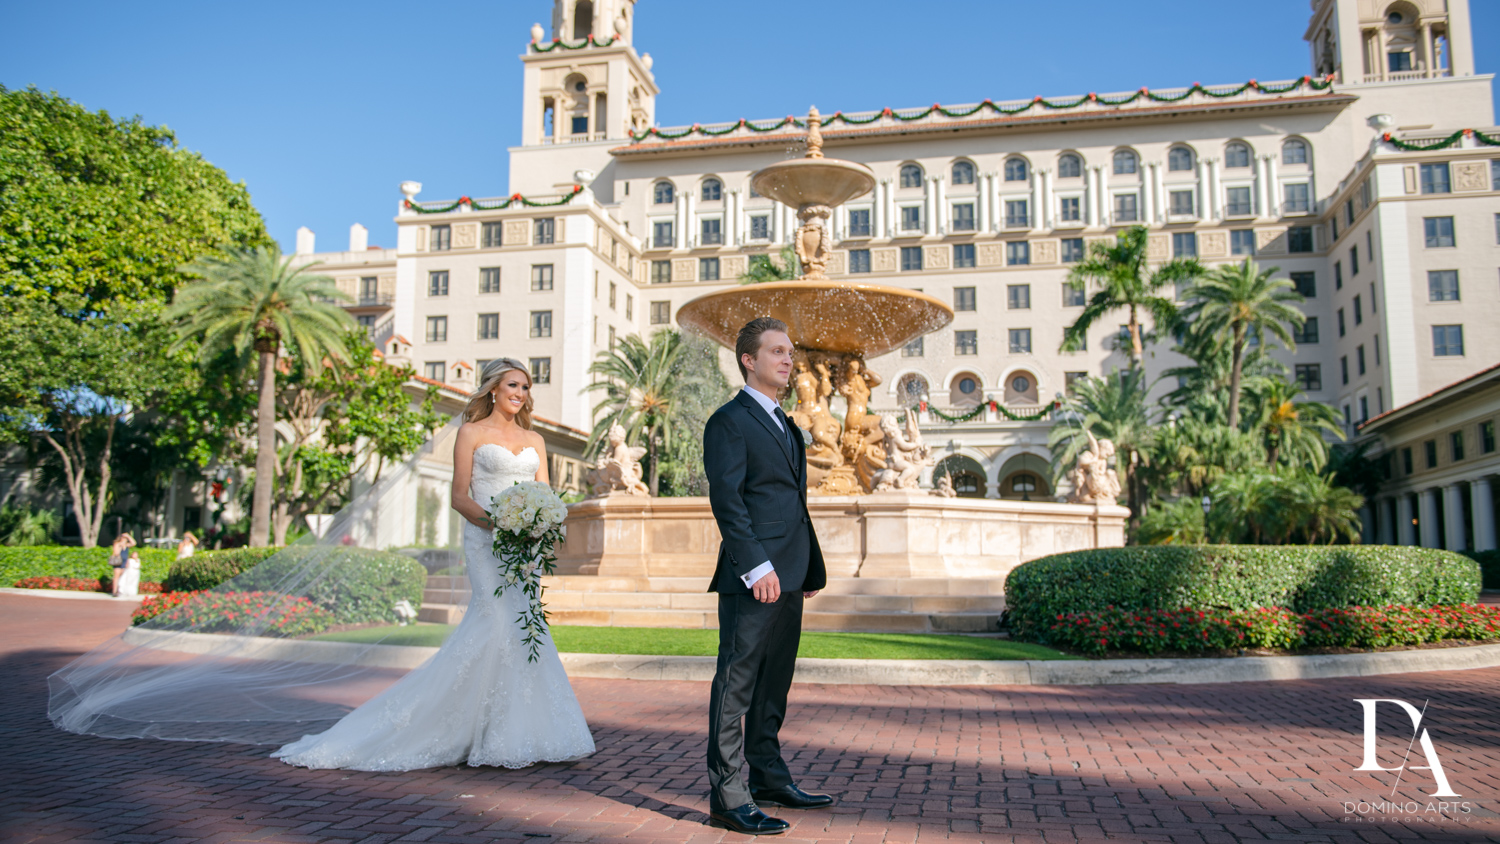 first look at Extravagant Wedding at The Breakers Palm Beach by Domino Arts Photography